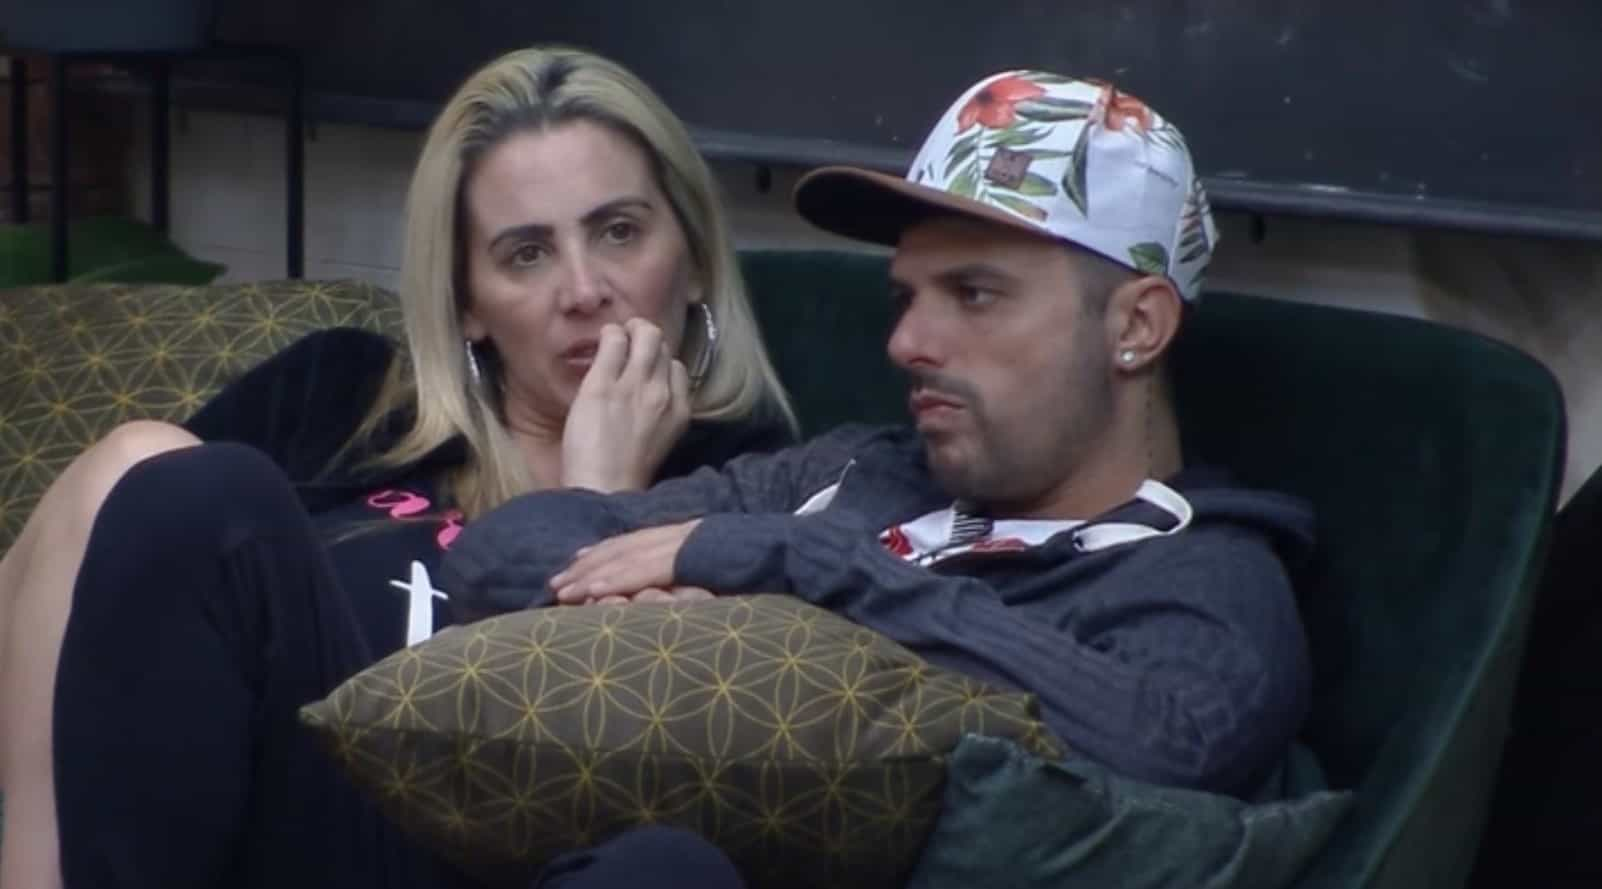 Faby Monarca e Enrico Mansur são eliminados do 'Power Couple Brasil'